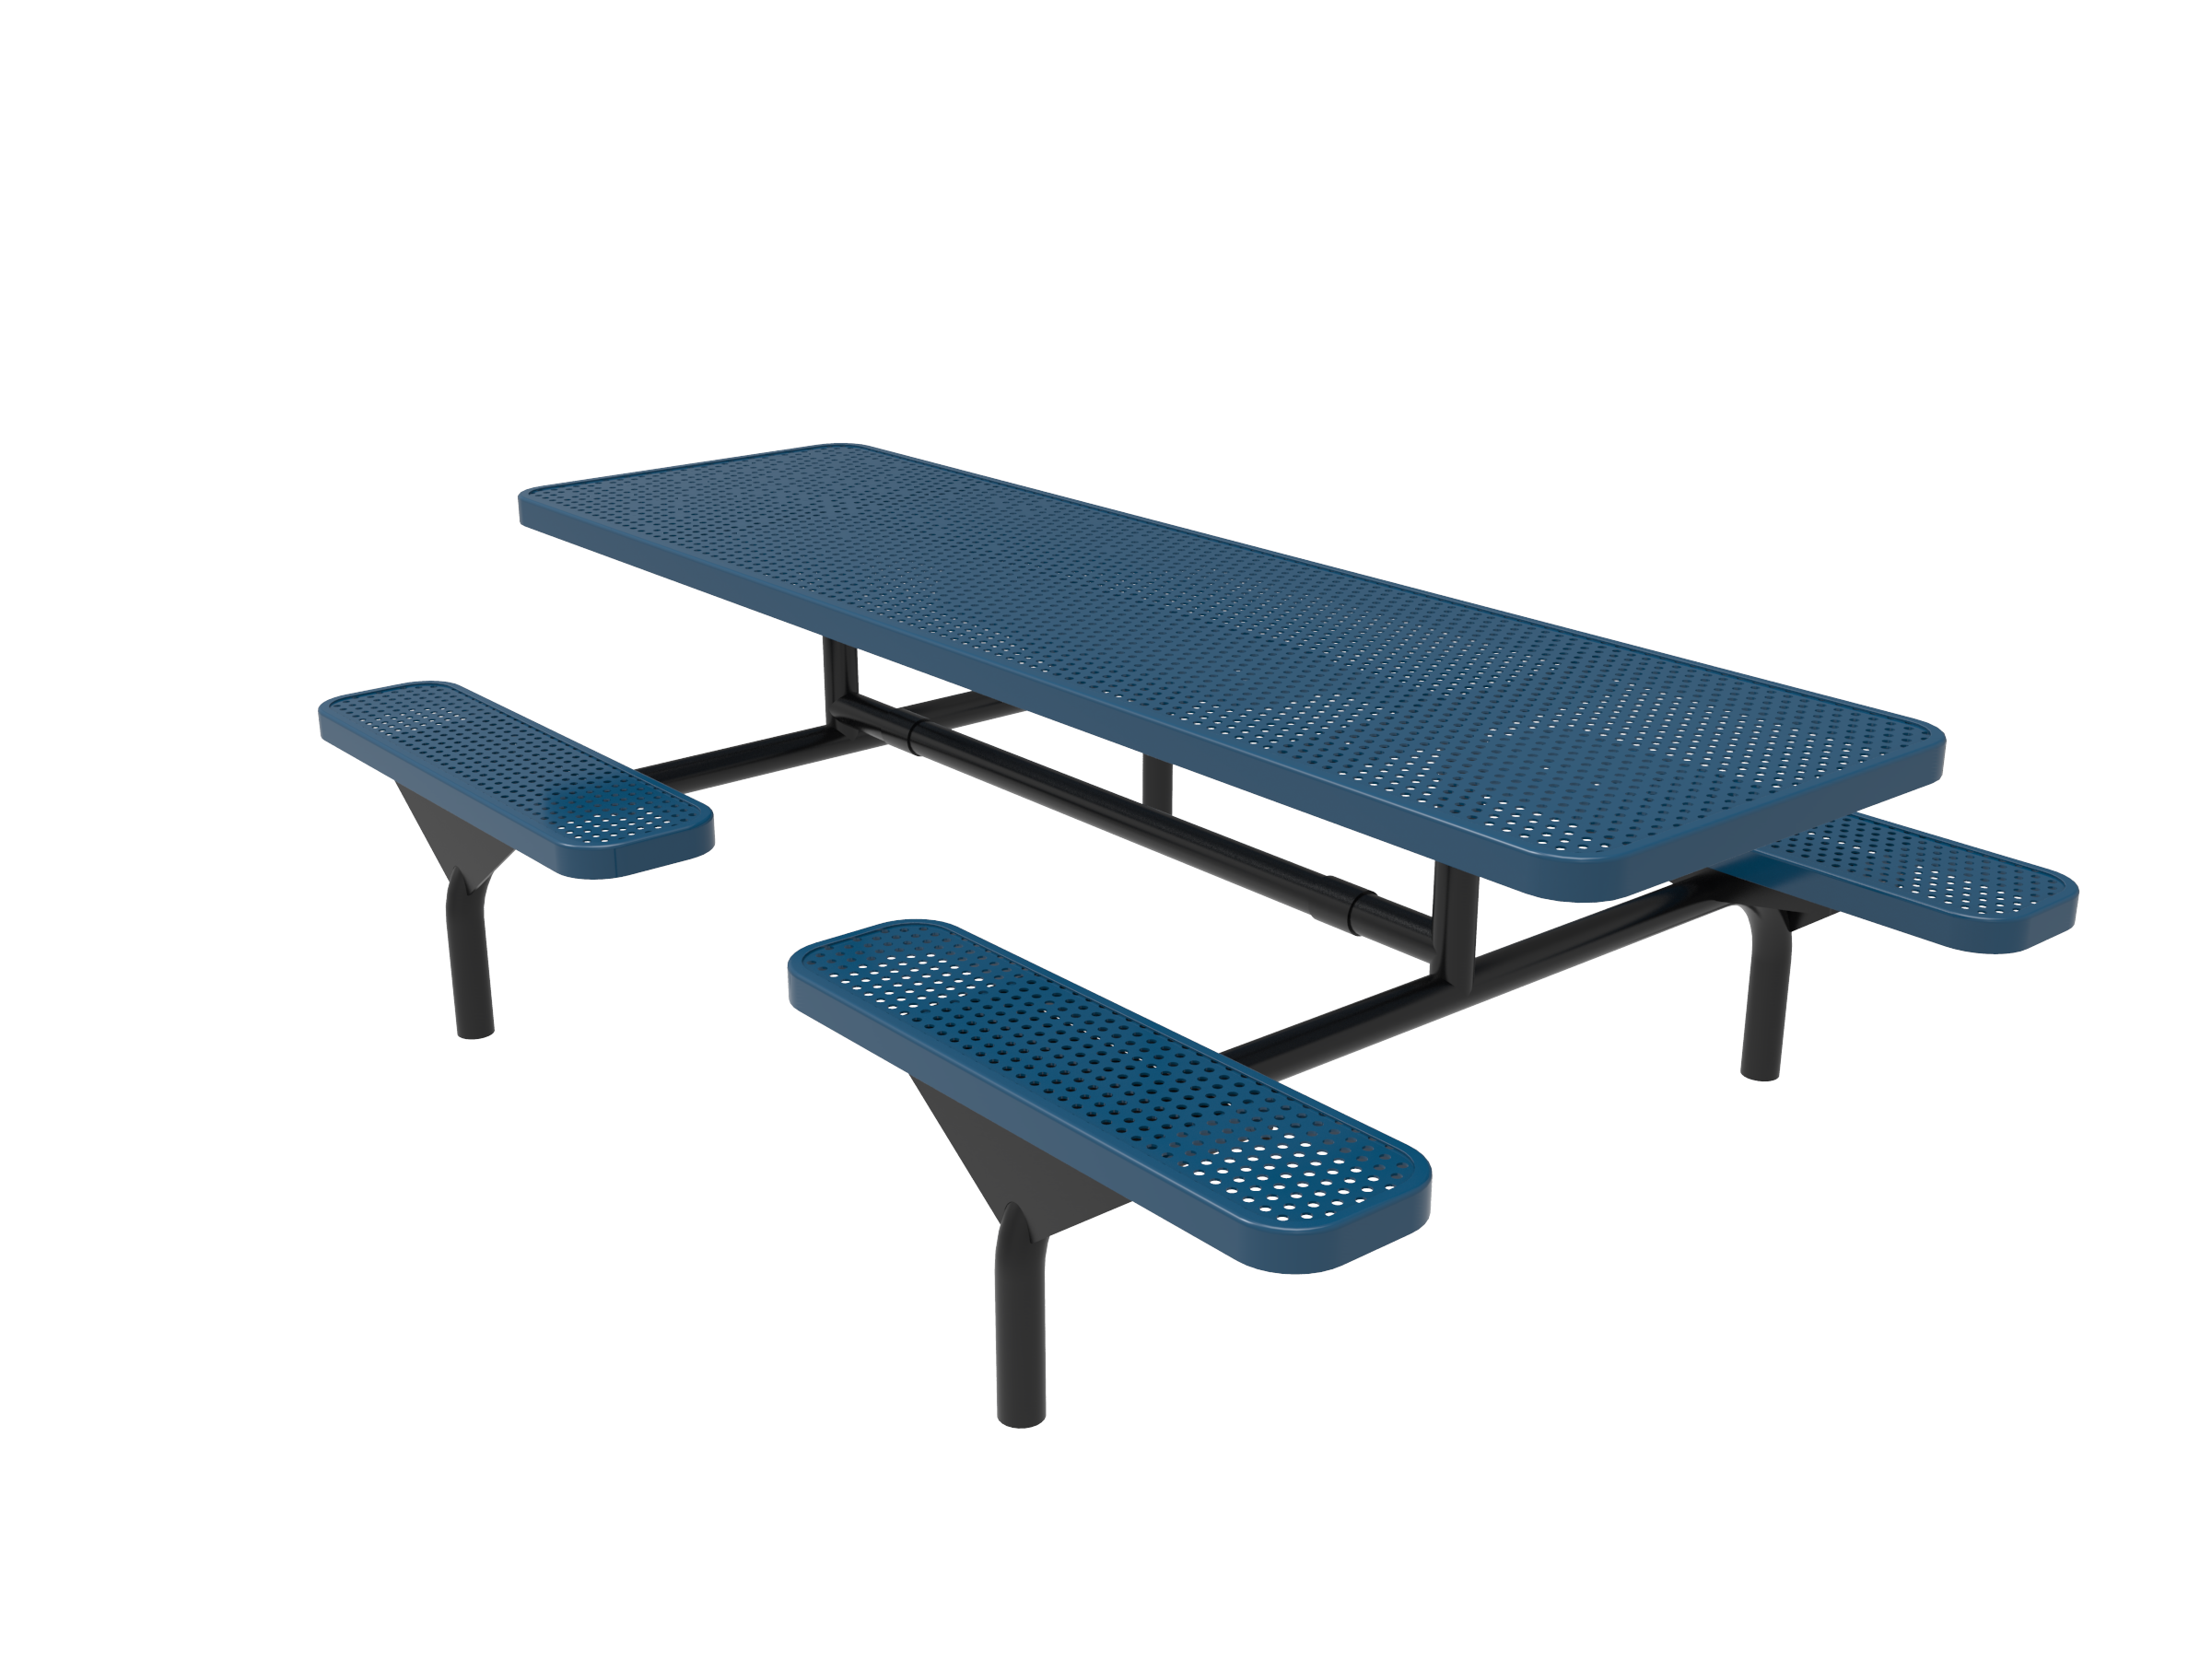 Lexington Rectangular Nexus Pedestal Table, Frame with Powder Coat Finish, Top with Advance DuraLex Coating